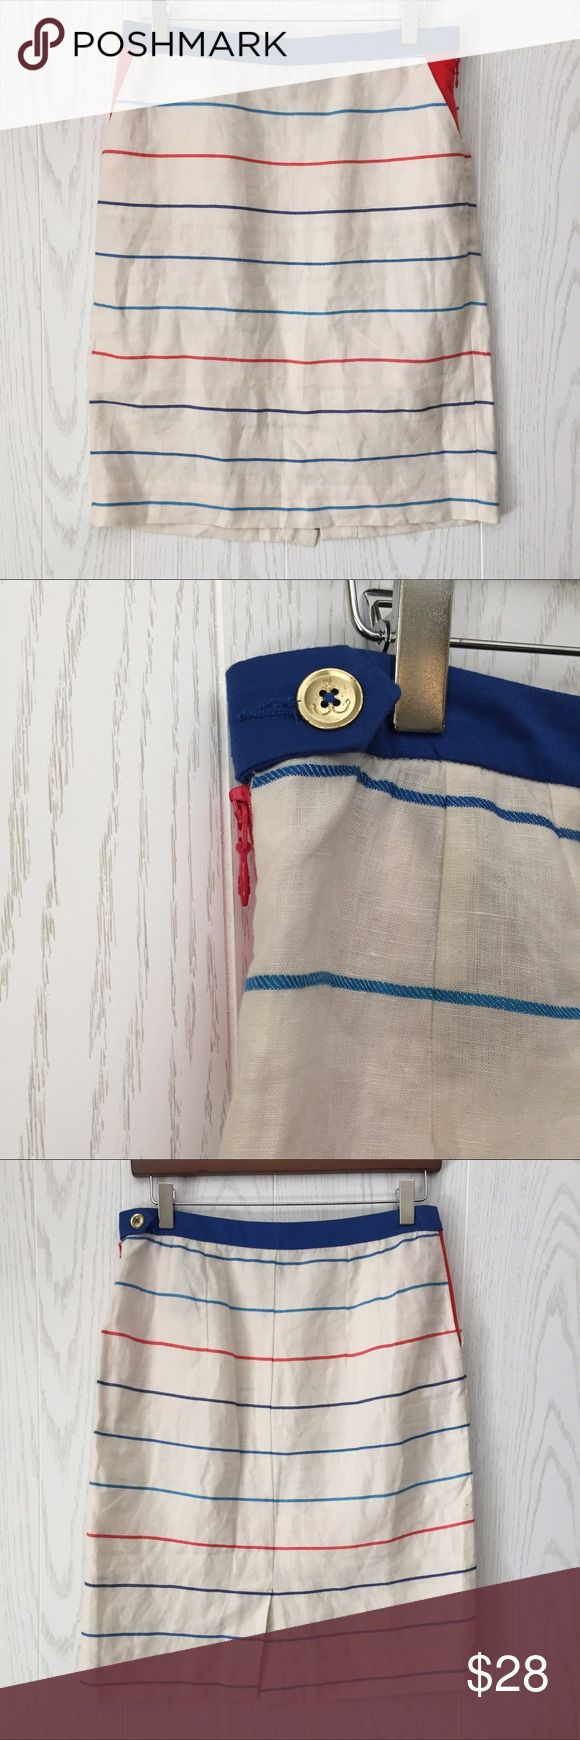 """Tommy Hilfiger Linen Blend Striped Skirt Tommy Hilfiger Linen Blend Striped Skirt • white with blue and red detail stripes • side pockets and side zip • gold anchor ⚓️ button closure detail • Linen and viscose blend • *unlined • 15"""" waist • 22"""" length • VGUC 😊 Tommy Hilfiger Skirts Midi"""